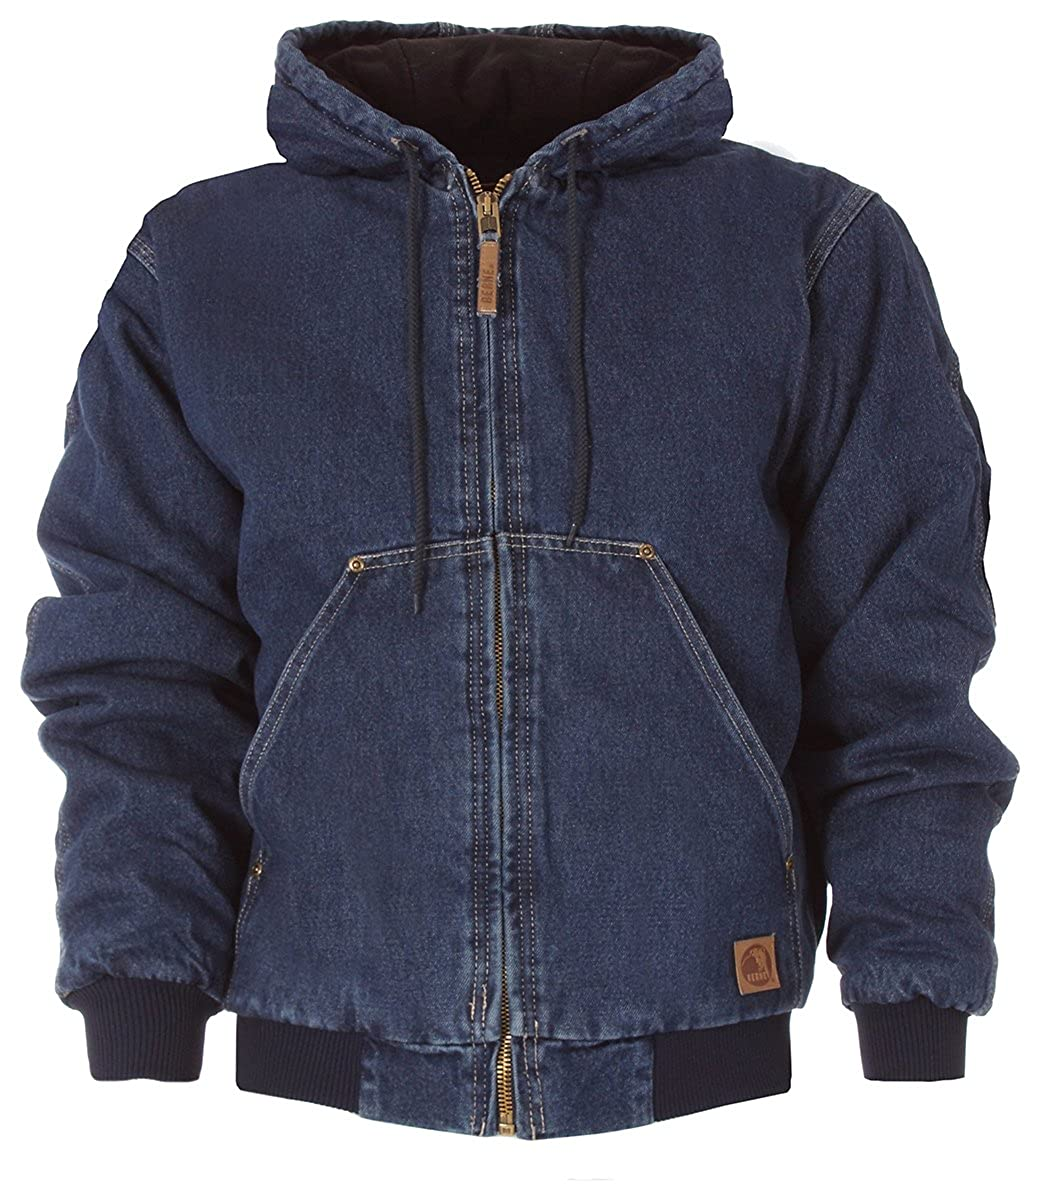 Berne Mens Washed Denim Hooded Jacket for Big and Tall